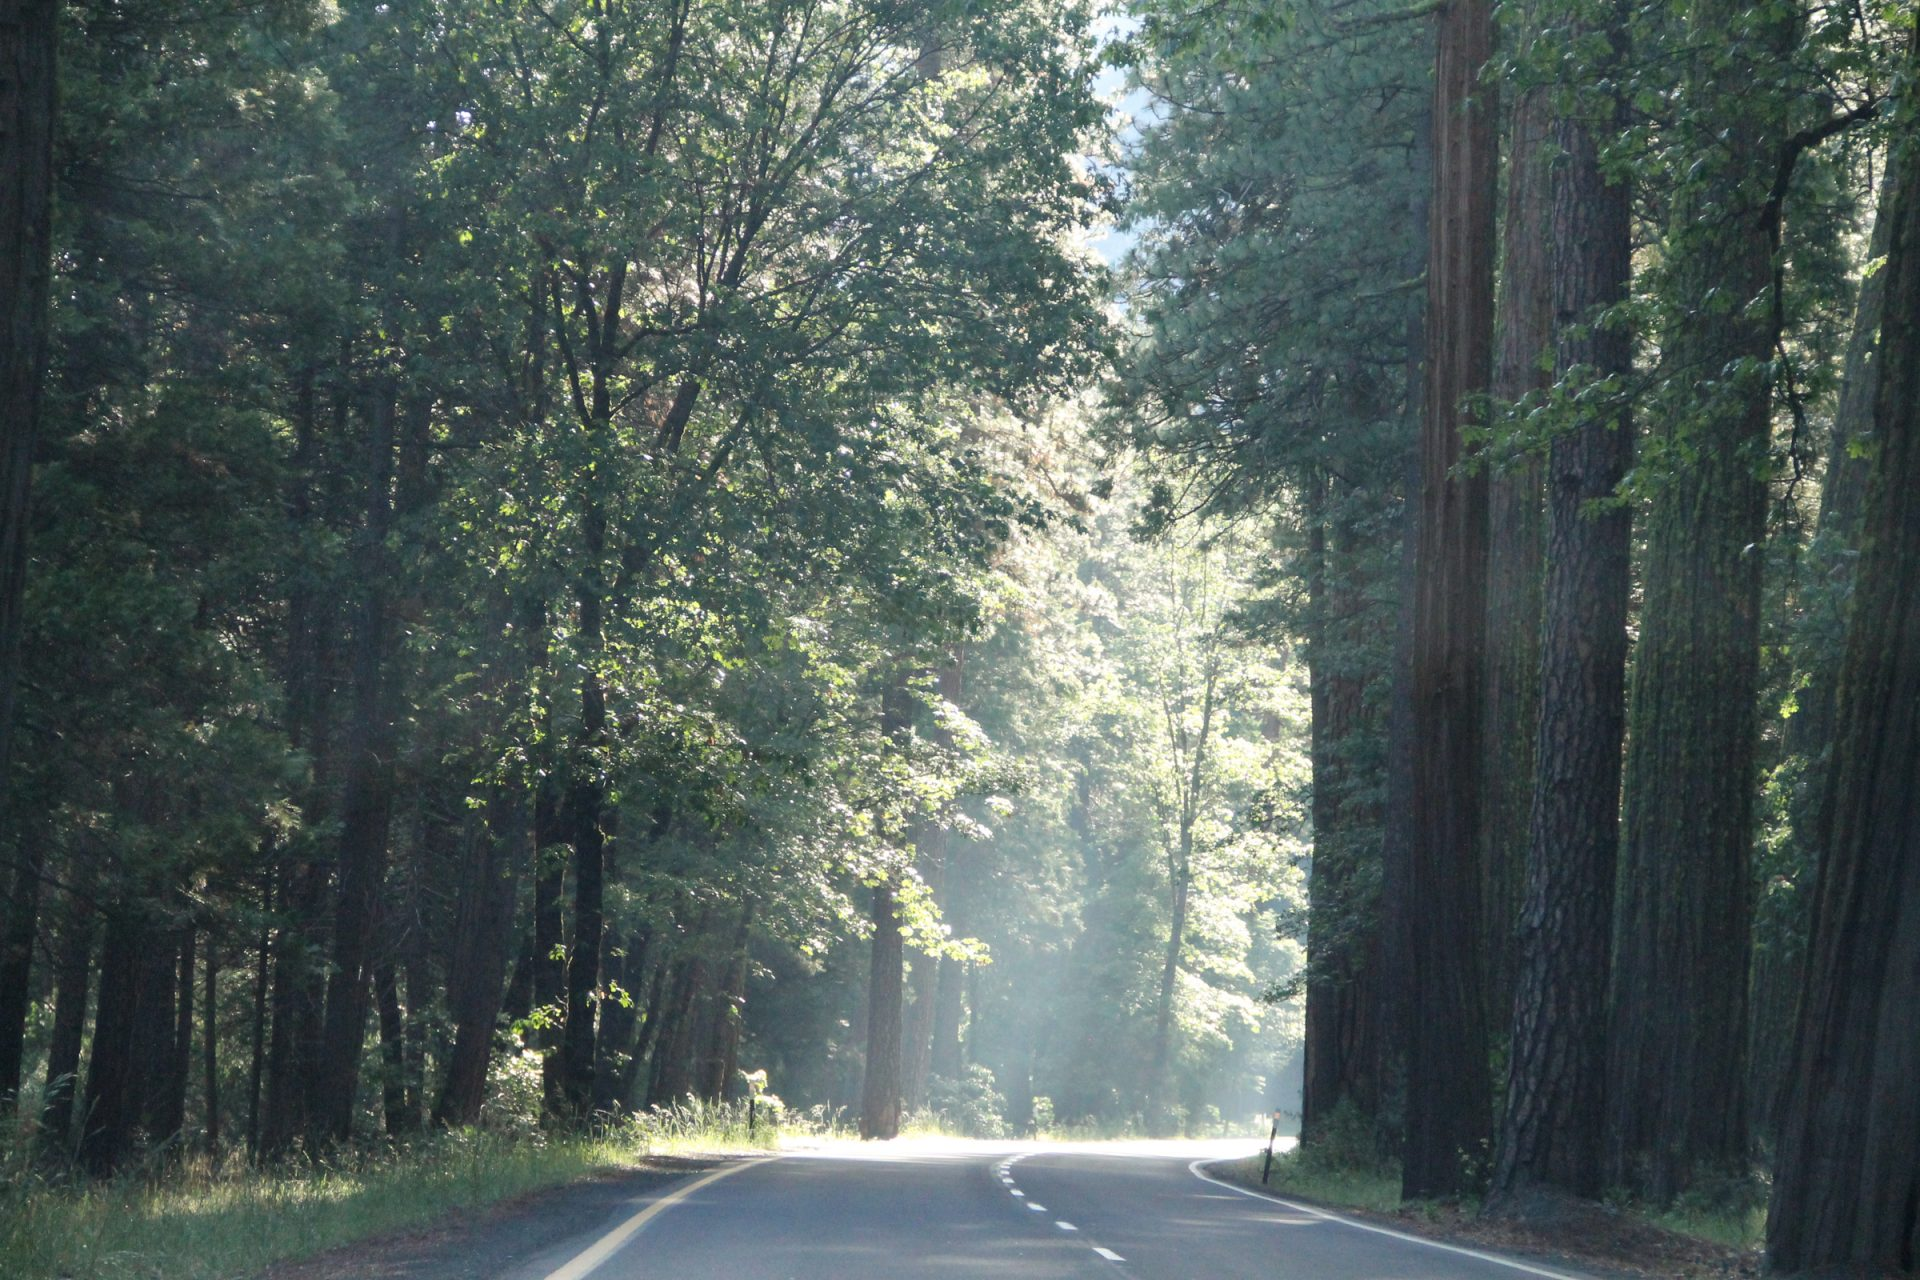 Road Through Trees in the Forest